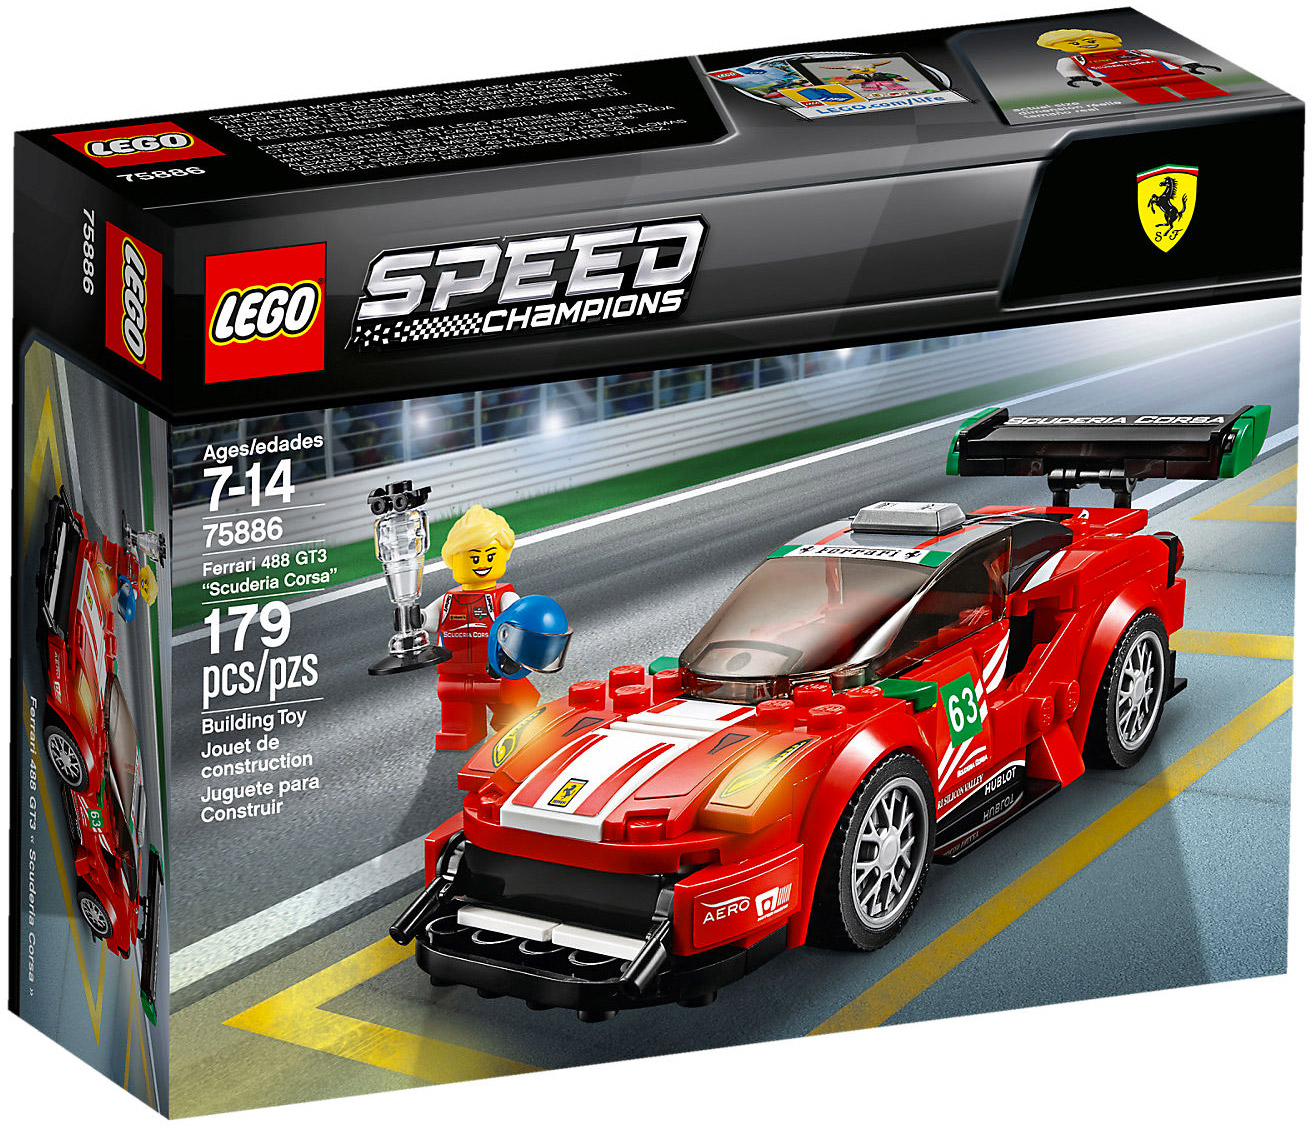 lego speed champions 75886 pas cher scuderia corsa. Black Bedroom Furniture Sets. Home Design Ideas